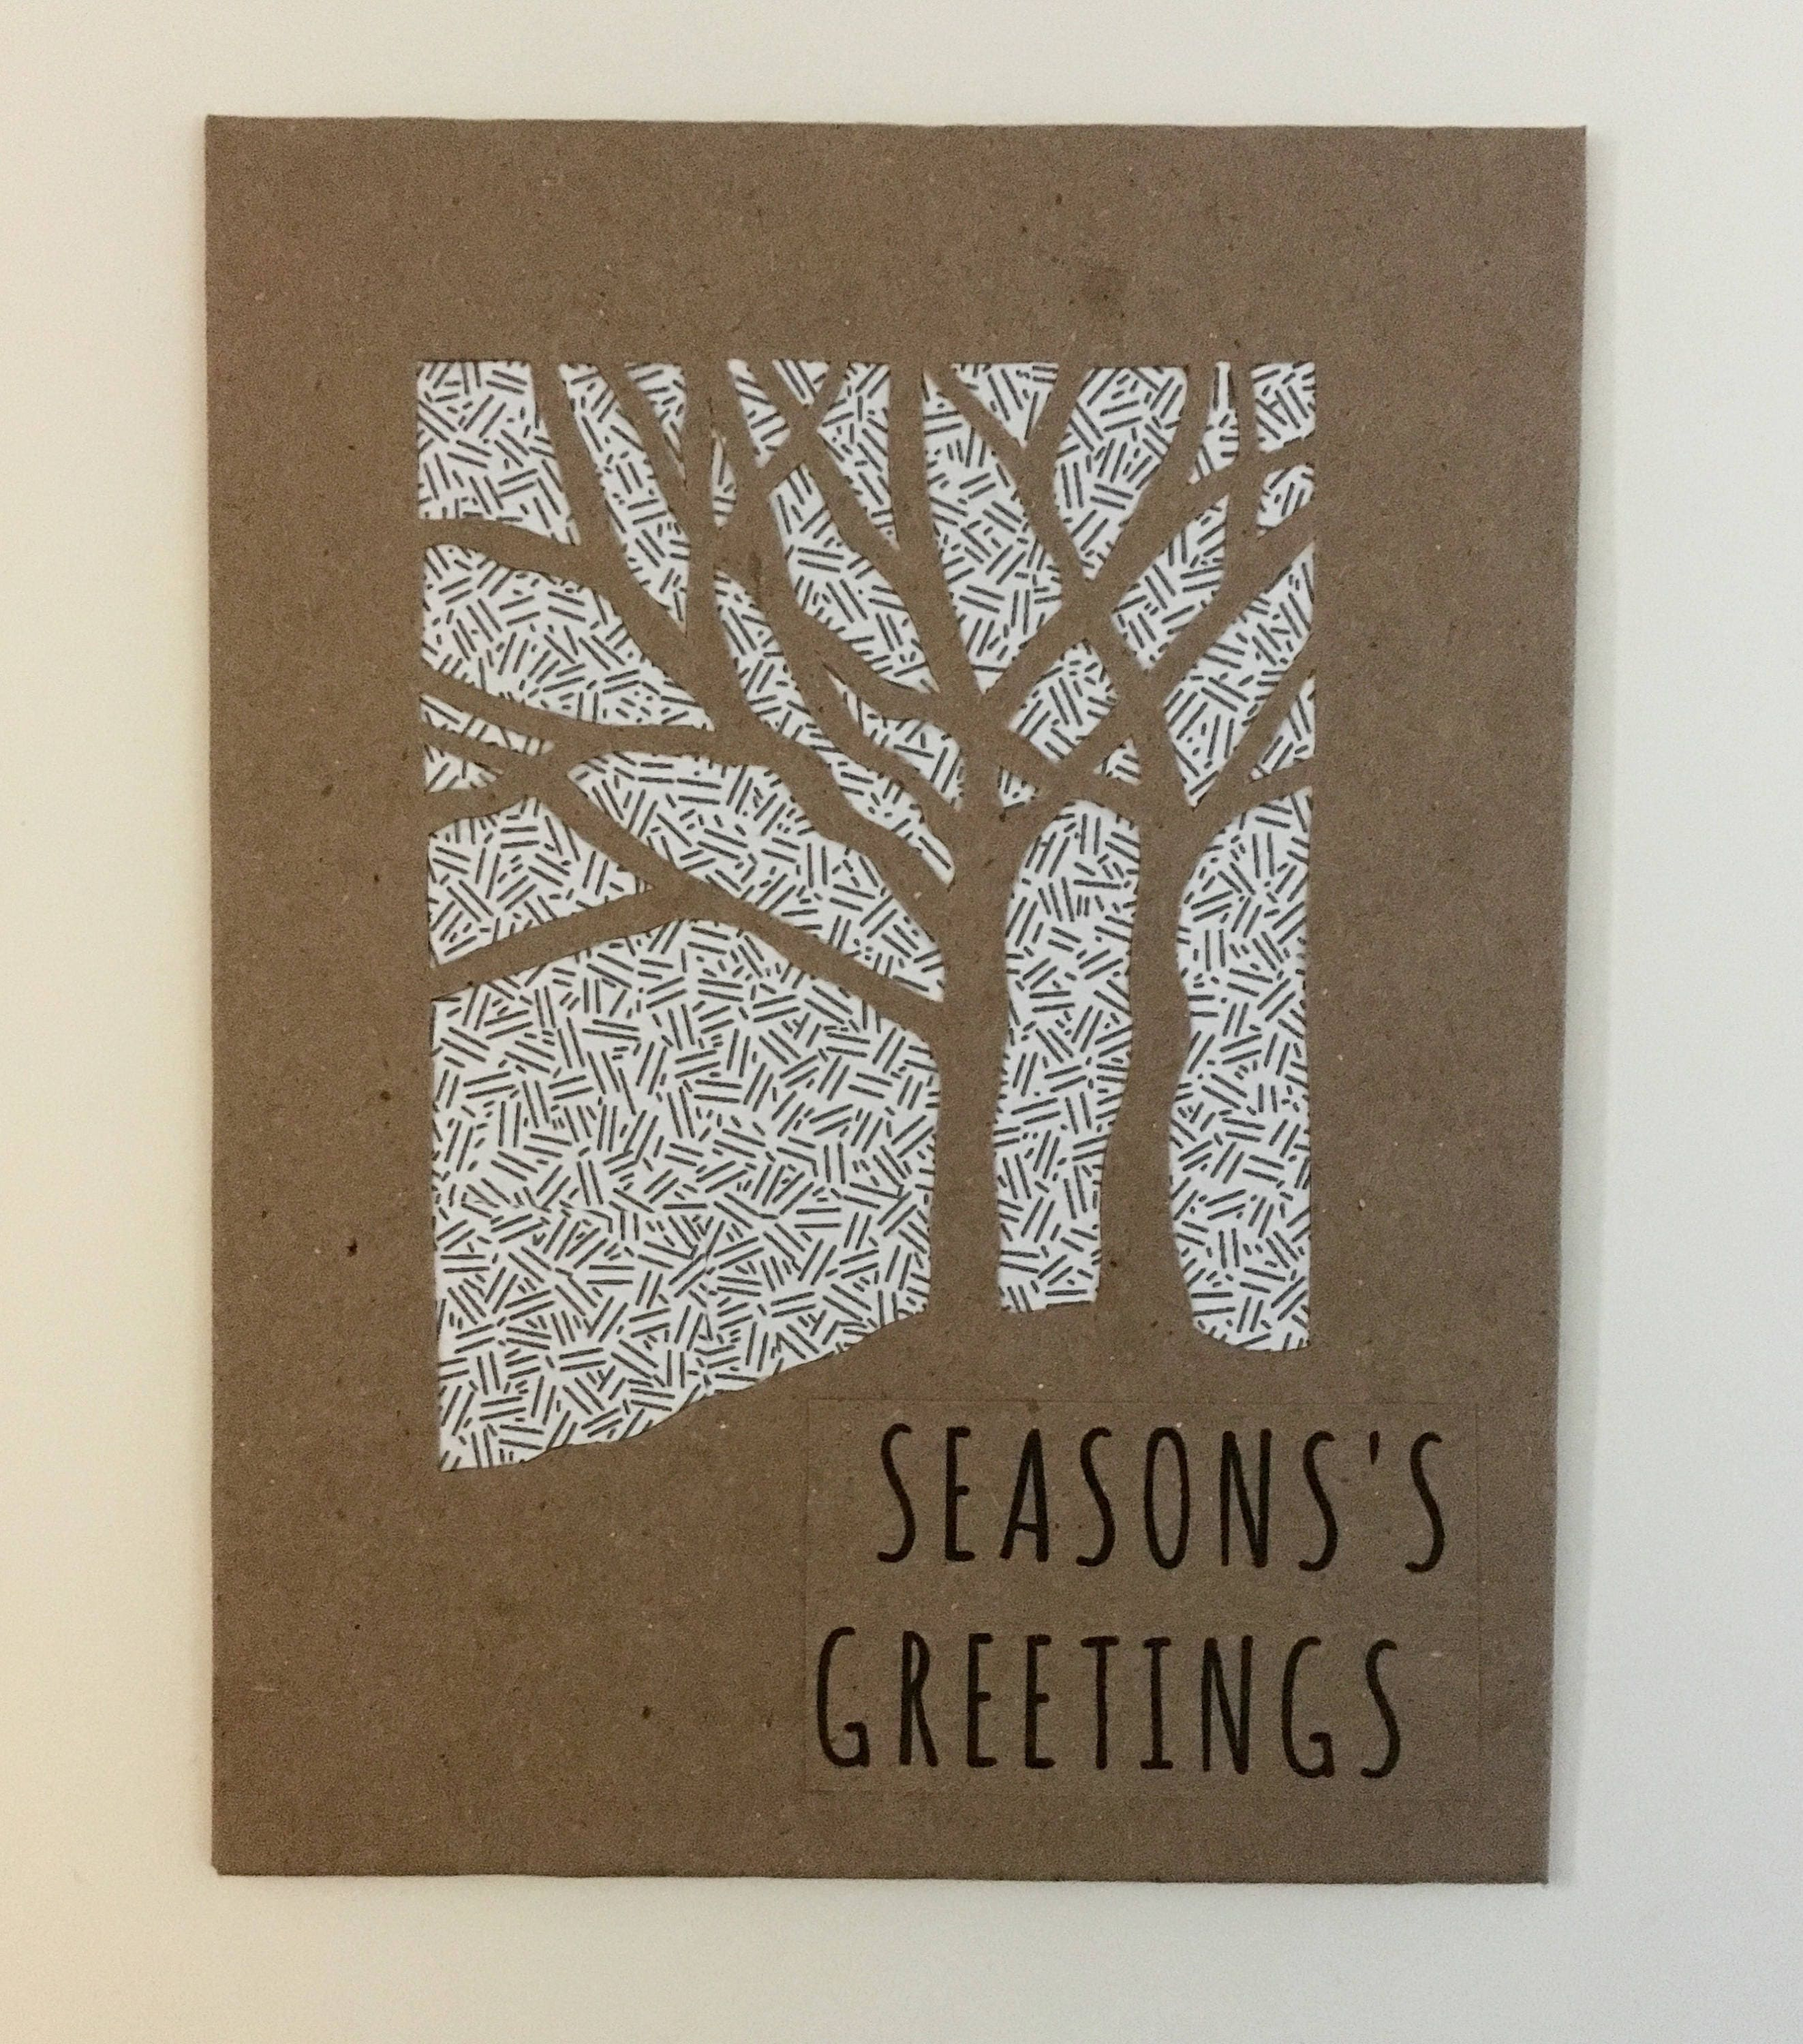 Holiday cards seasons greetings card greeting cards handmade holiday cards seasons greetings card greeting cards handmade seasonal card seasons greetings tree silhouette recycled paper kristyandbryce Images